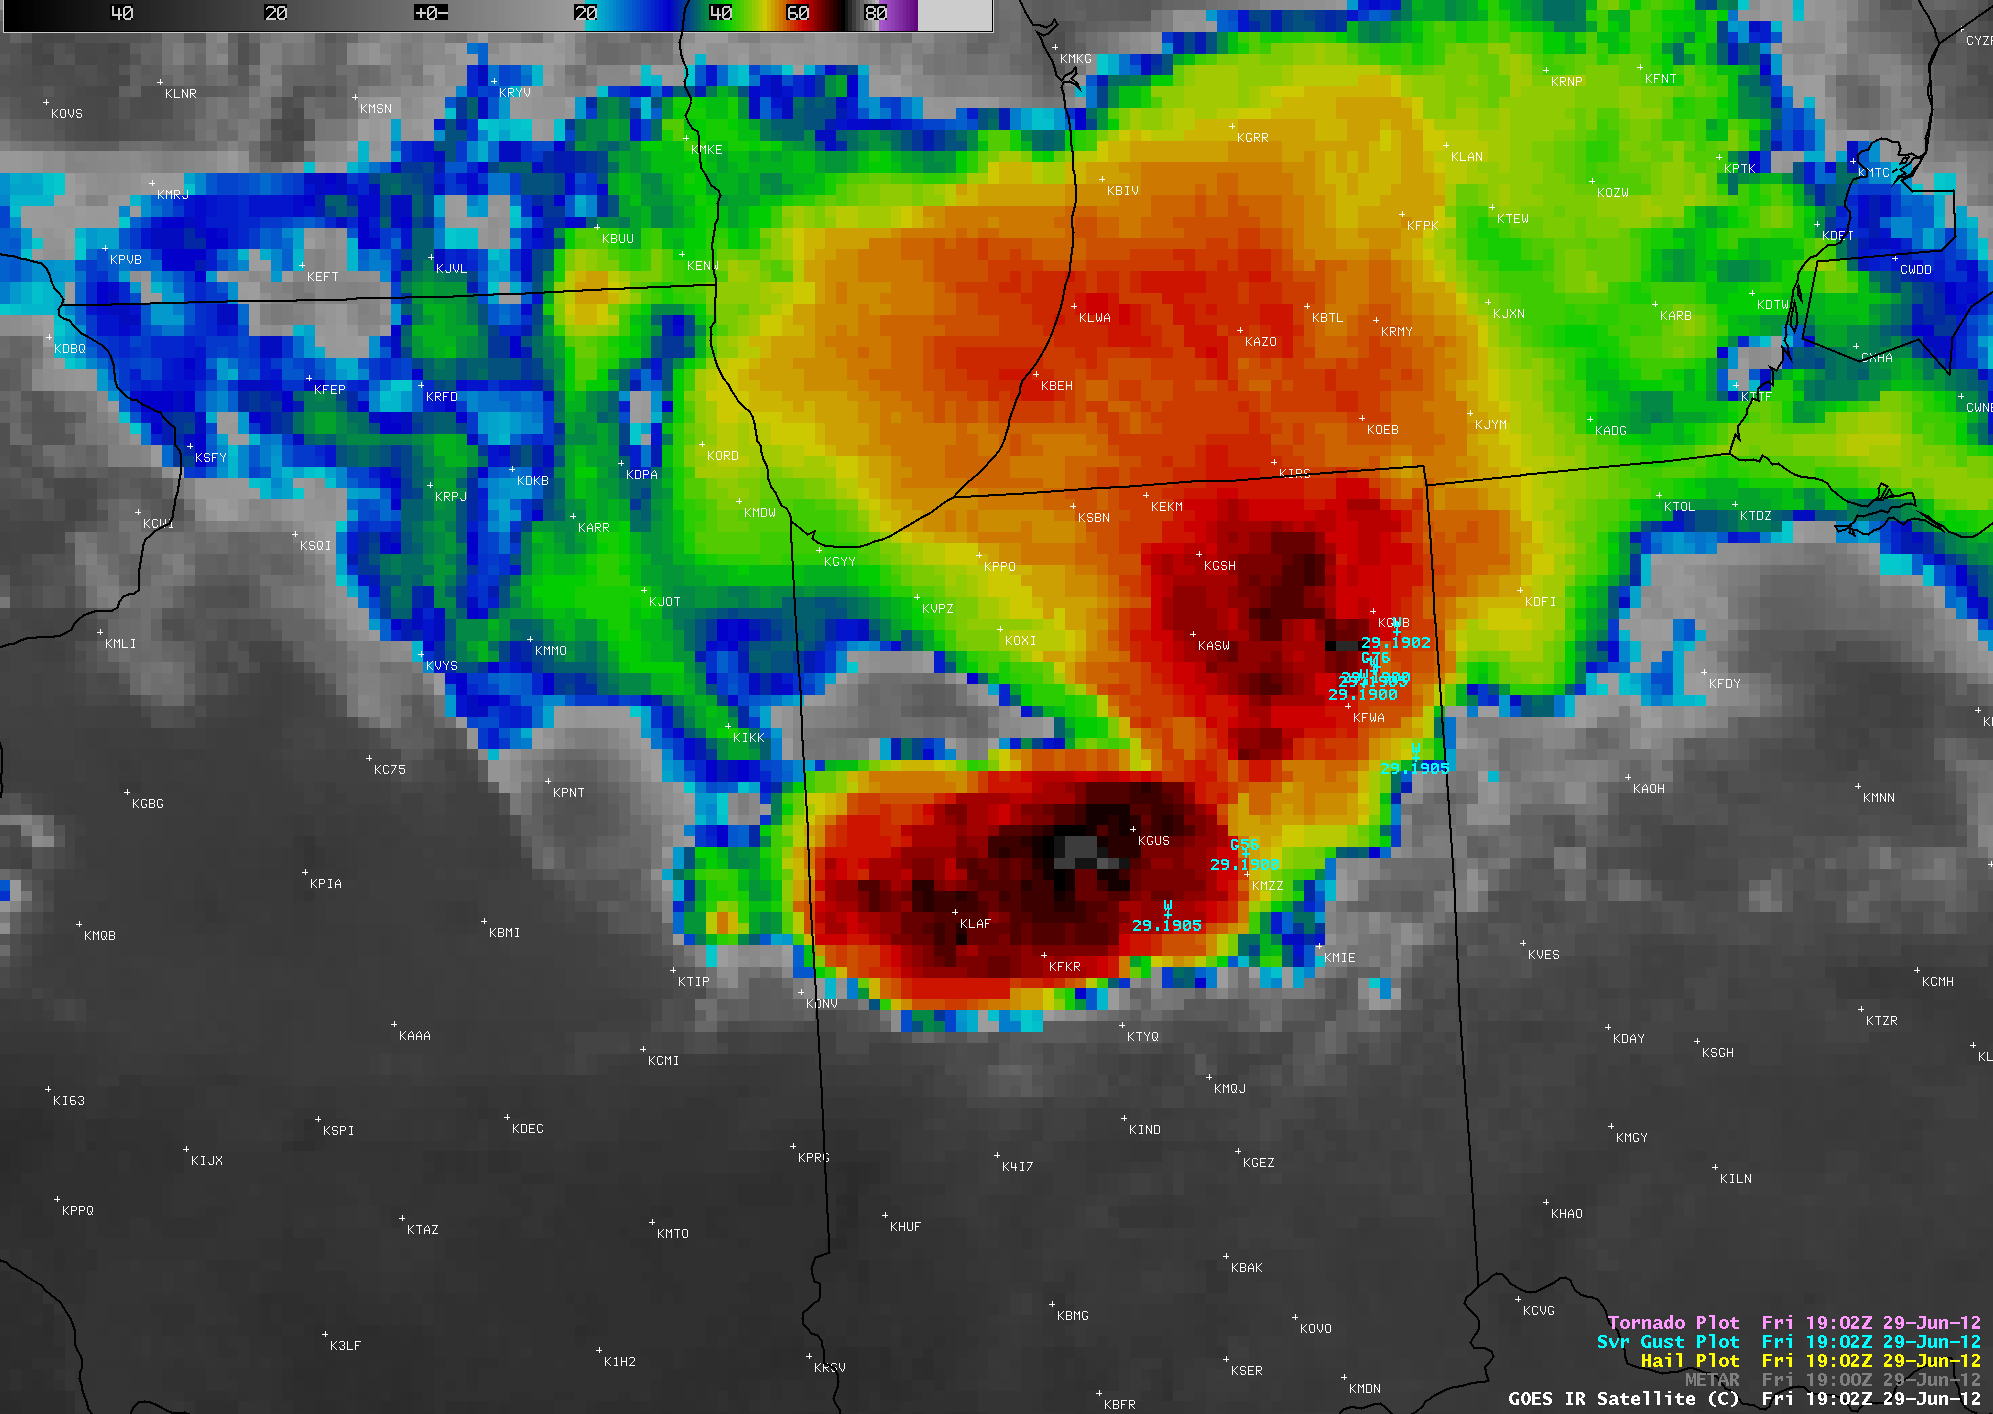 GOES-13 10.7 µm IR images + SPC storm reports (click image to play animation)